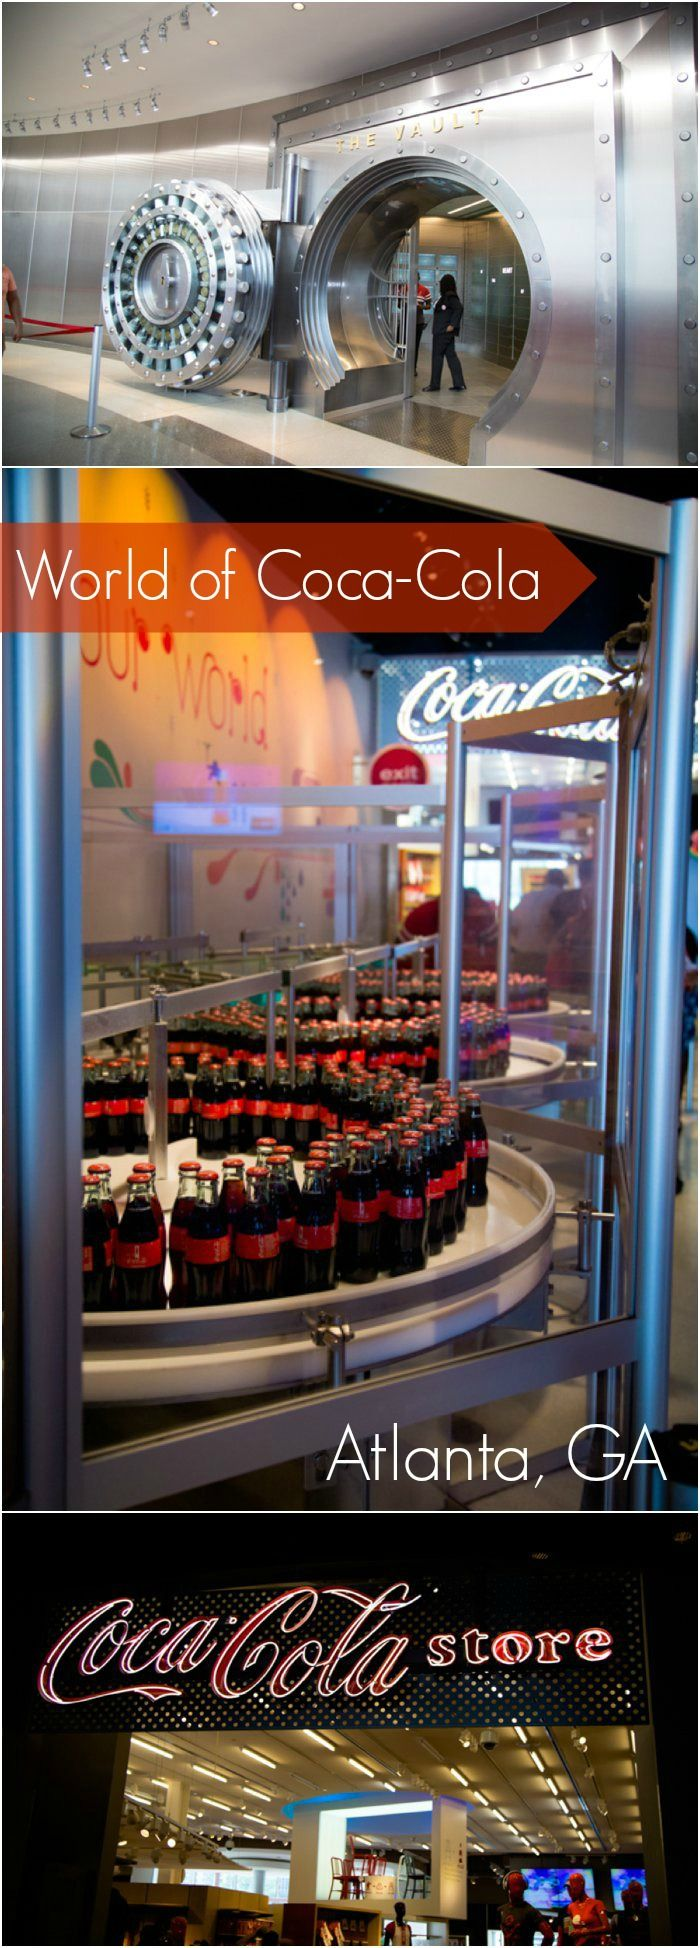 The World of Coca-Cola: The most unique museum I've ever seen. Great family spot if you're heading to Atlanta! Check out our favorite moments.